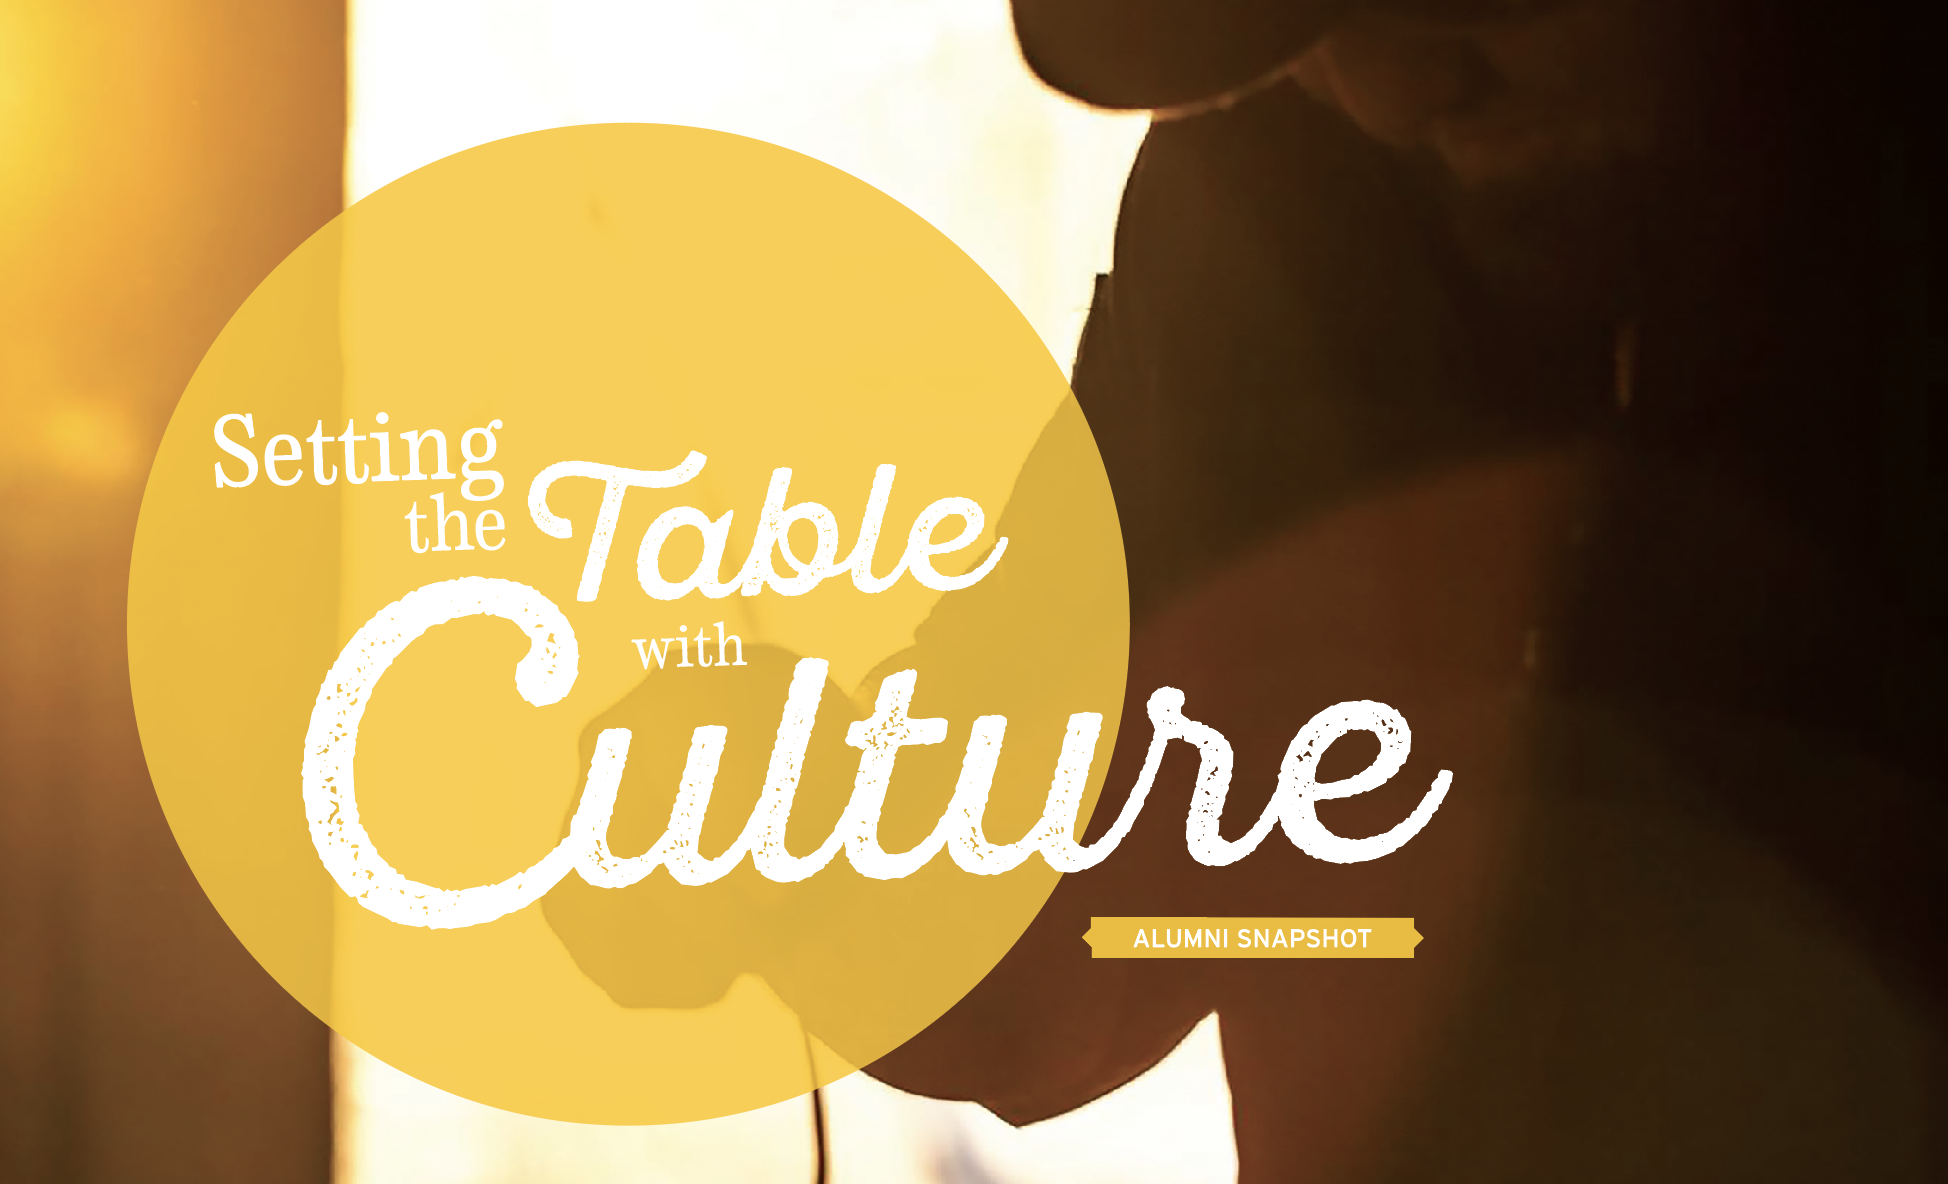 Setting the Table with Culture Alumni Snapshot